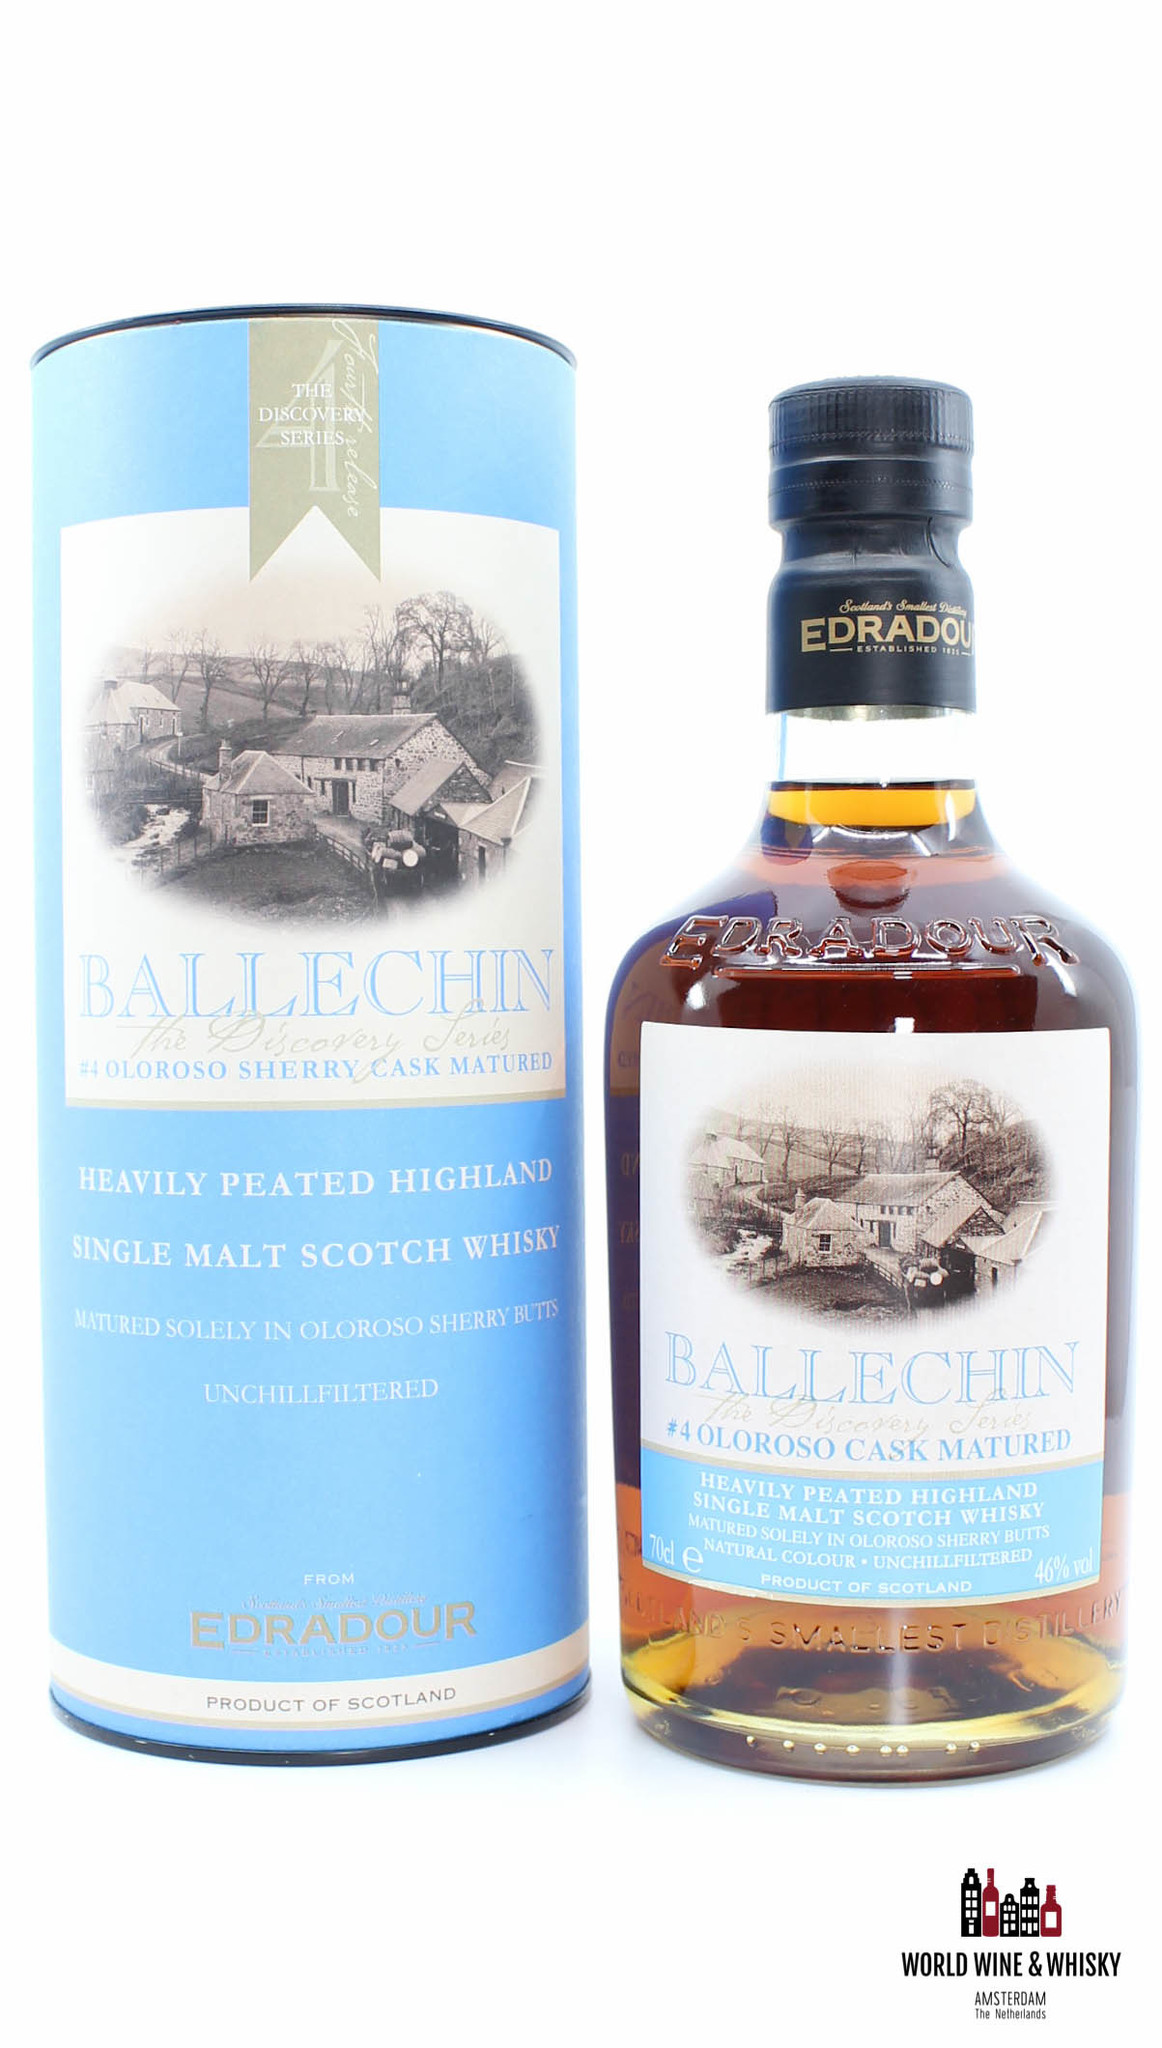 Edradour Edradour Ballechin Batch 4 - The Discovery Series - Oloroso Cask Matured 2009 46% (#4)